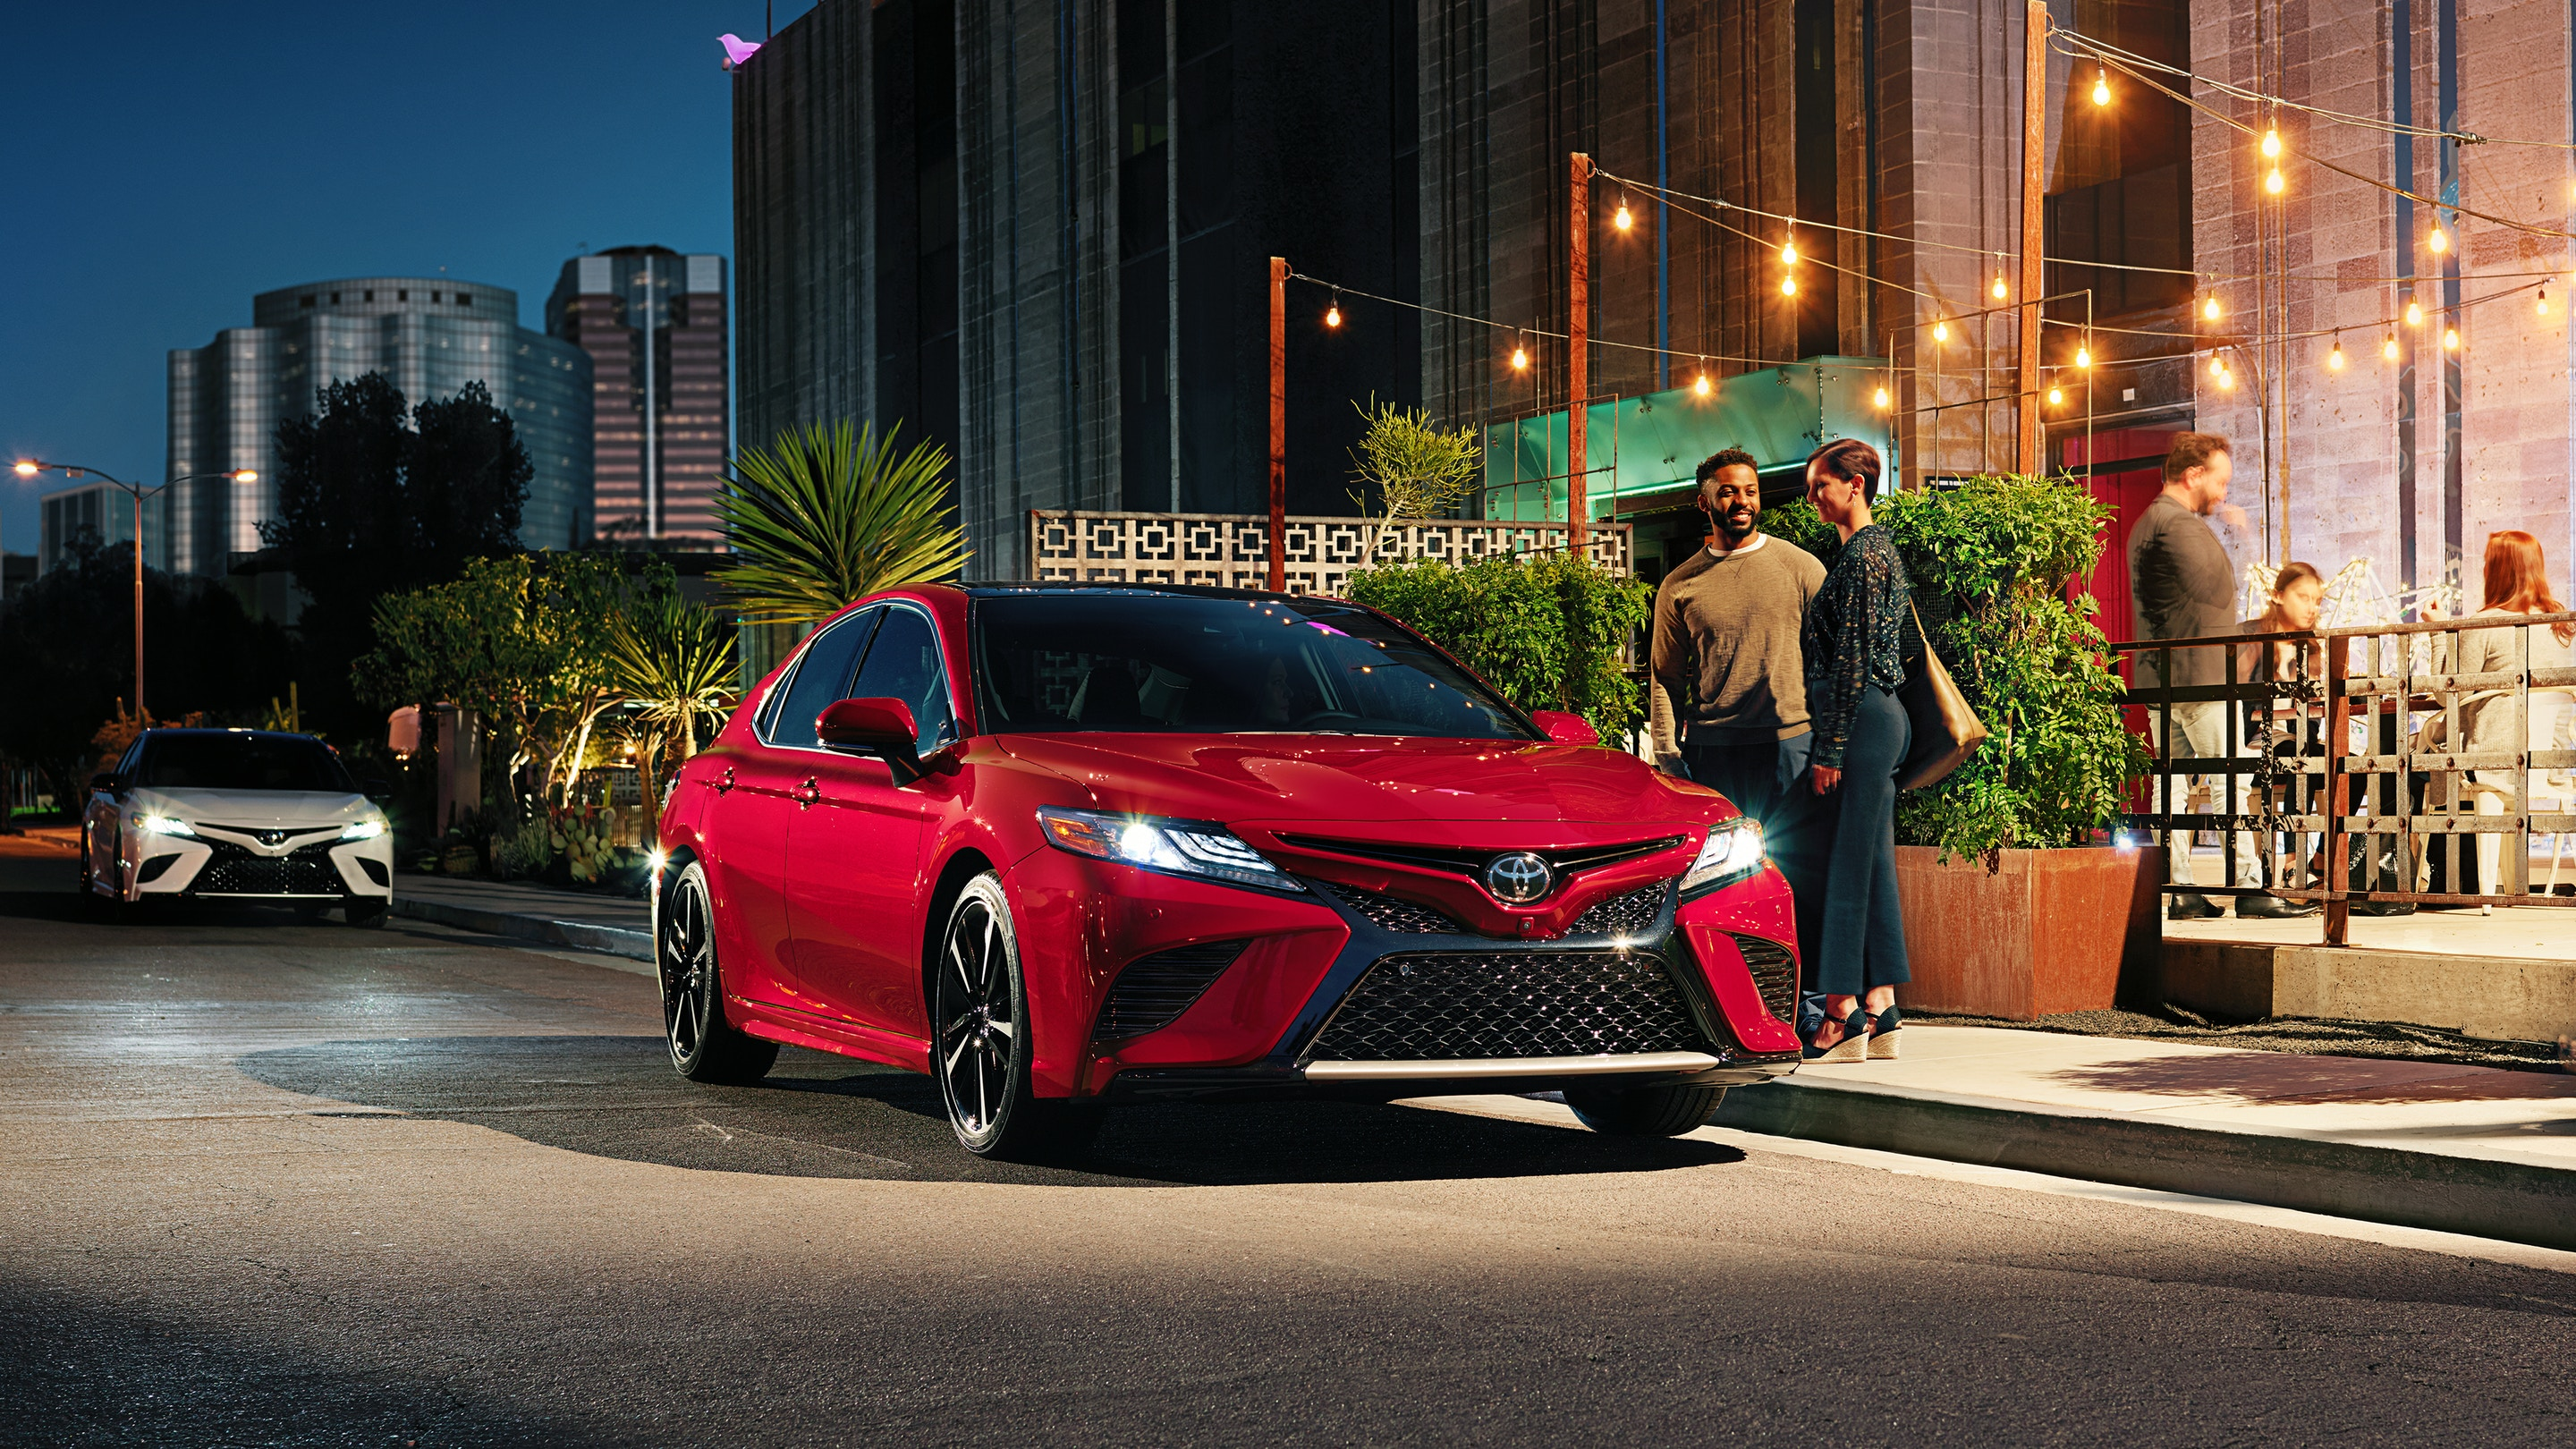 2019 Toyota Camry Front Red Exterior